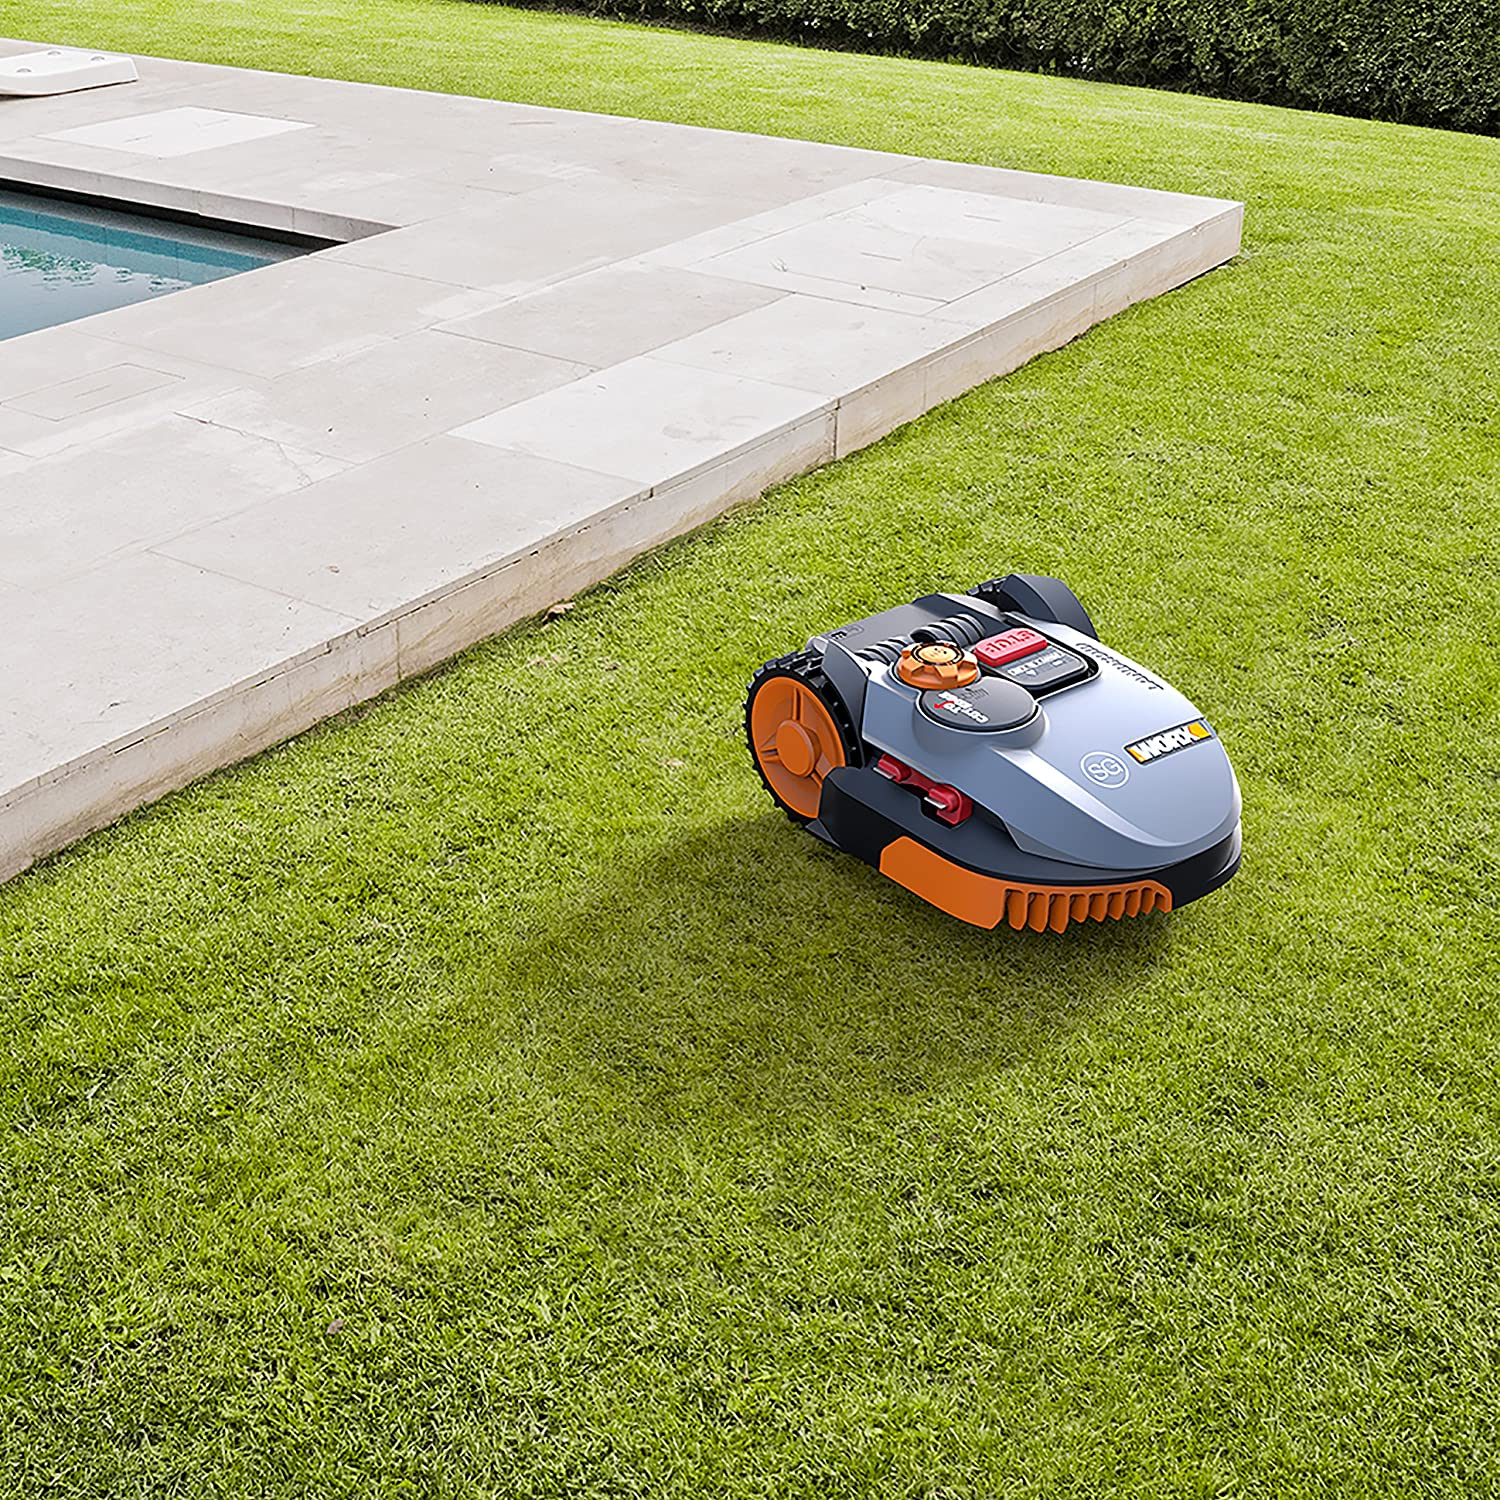 Worx wr103si País roid Césped Robot cortacésped sg500i hasta 500 ...